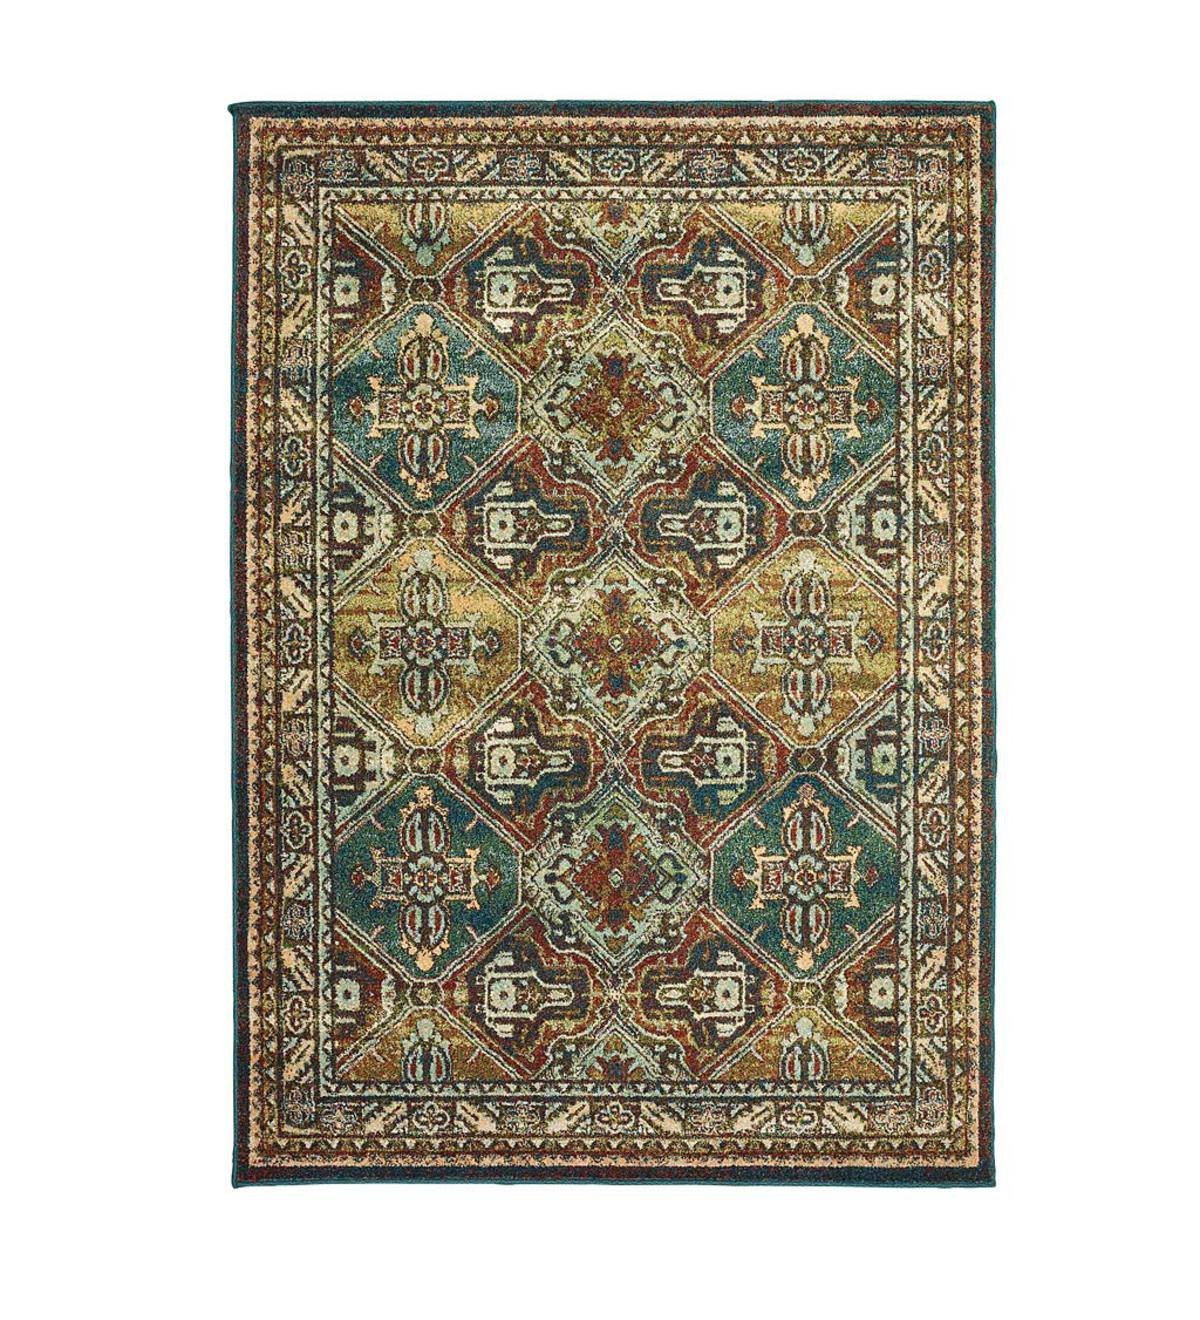 Daughton Teal Area Rugs, 8' x 11'